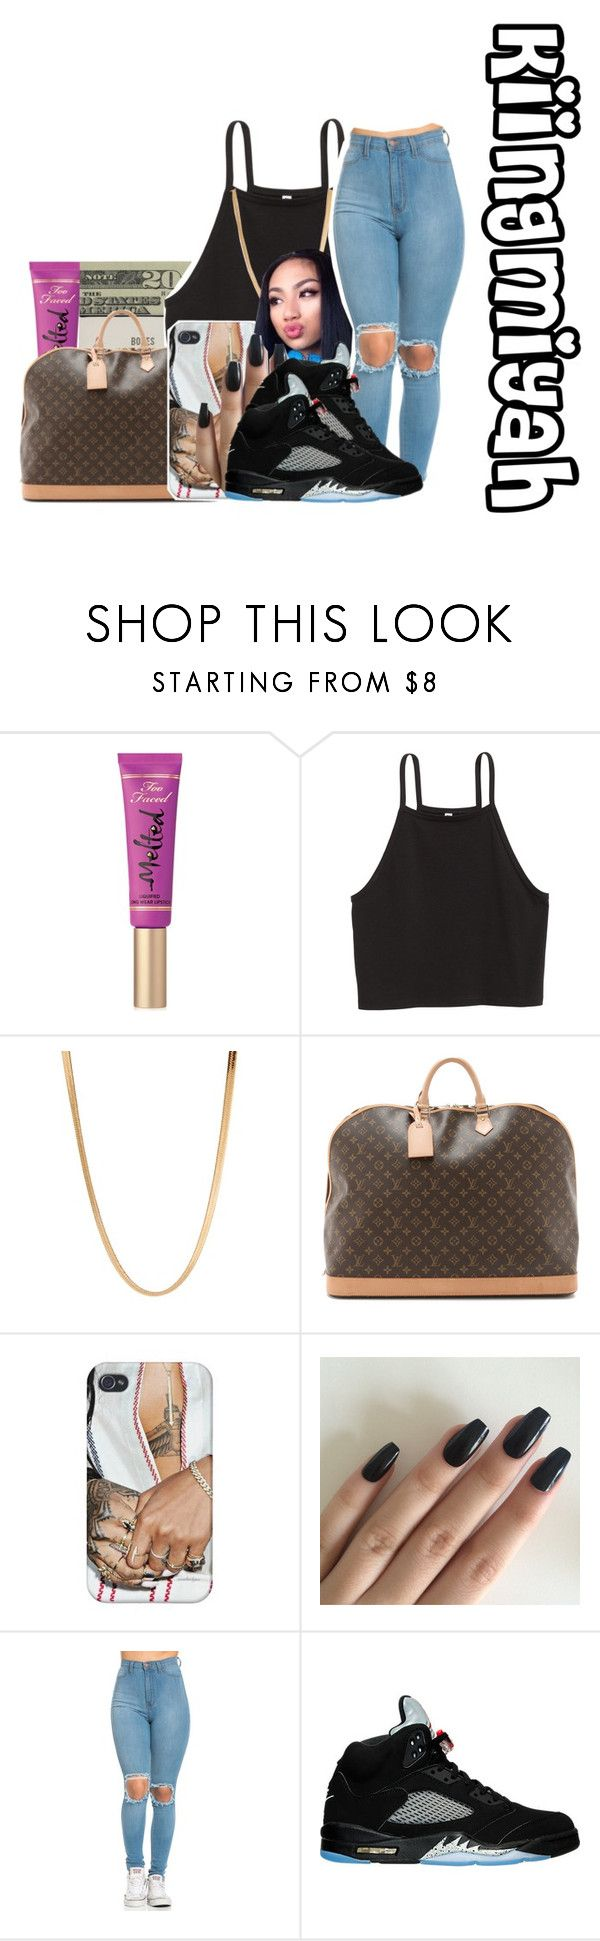 """Only for you"" by kiingmiyah ❤ liked on Polyvore featuring Too Faced Cosmetics, Jack Spade, ASOS and NIKE"